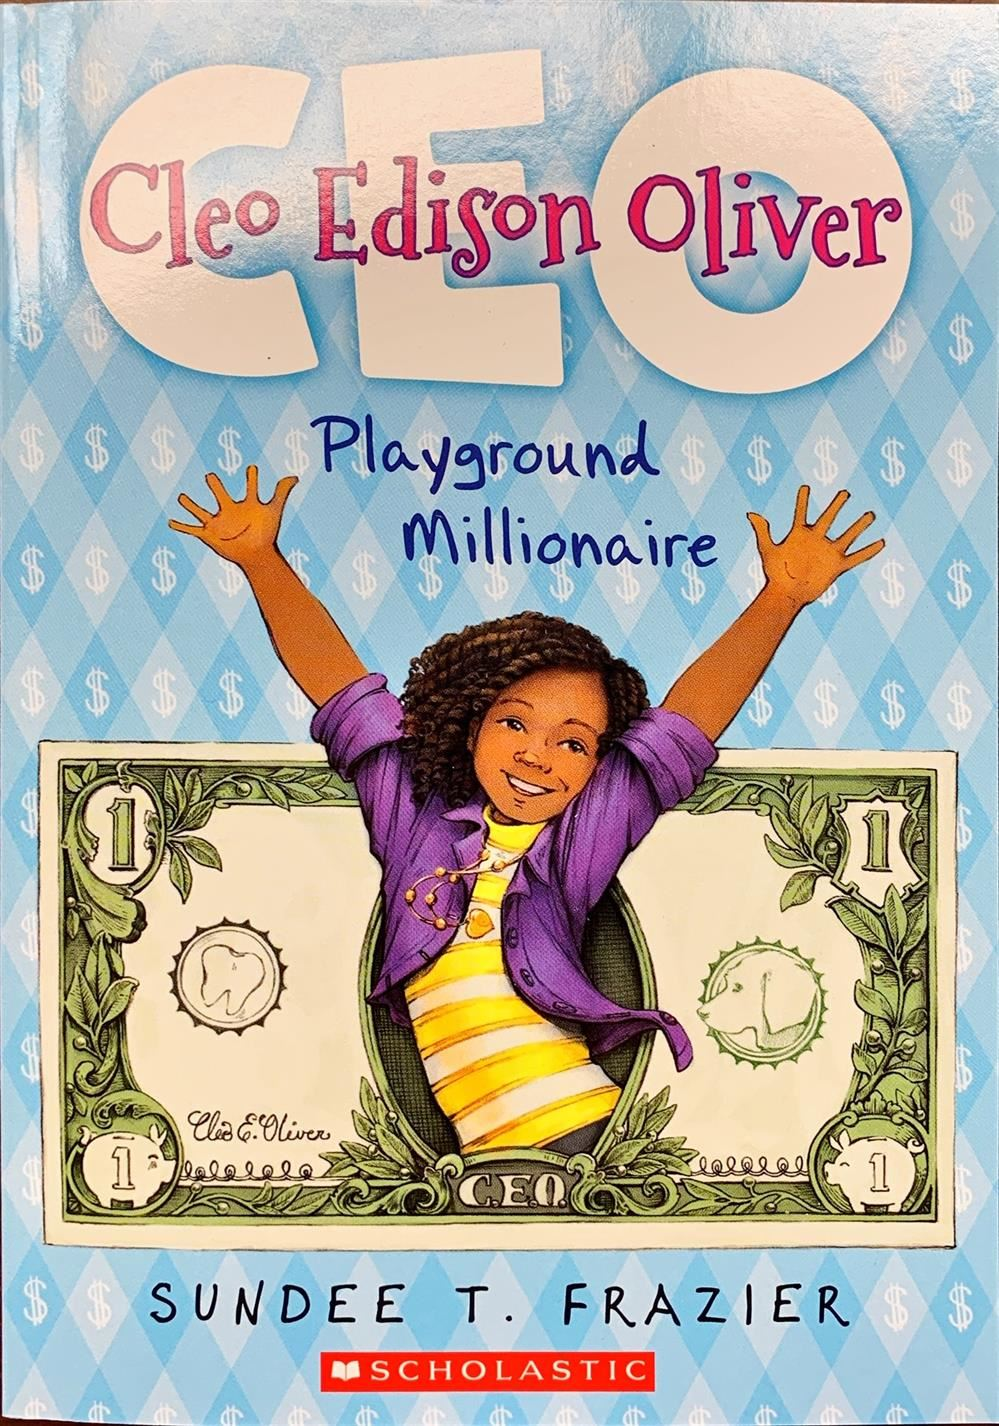 Cleo Edison Oliver Playground Millionaire Book Cover